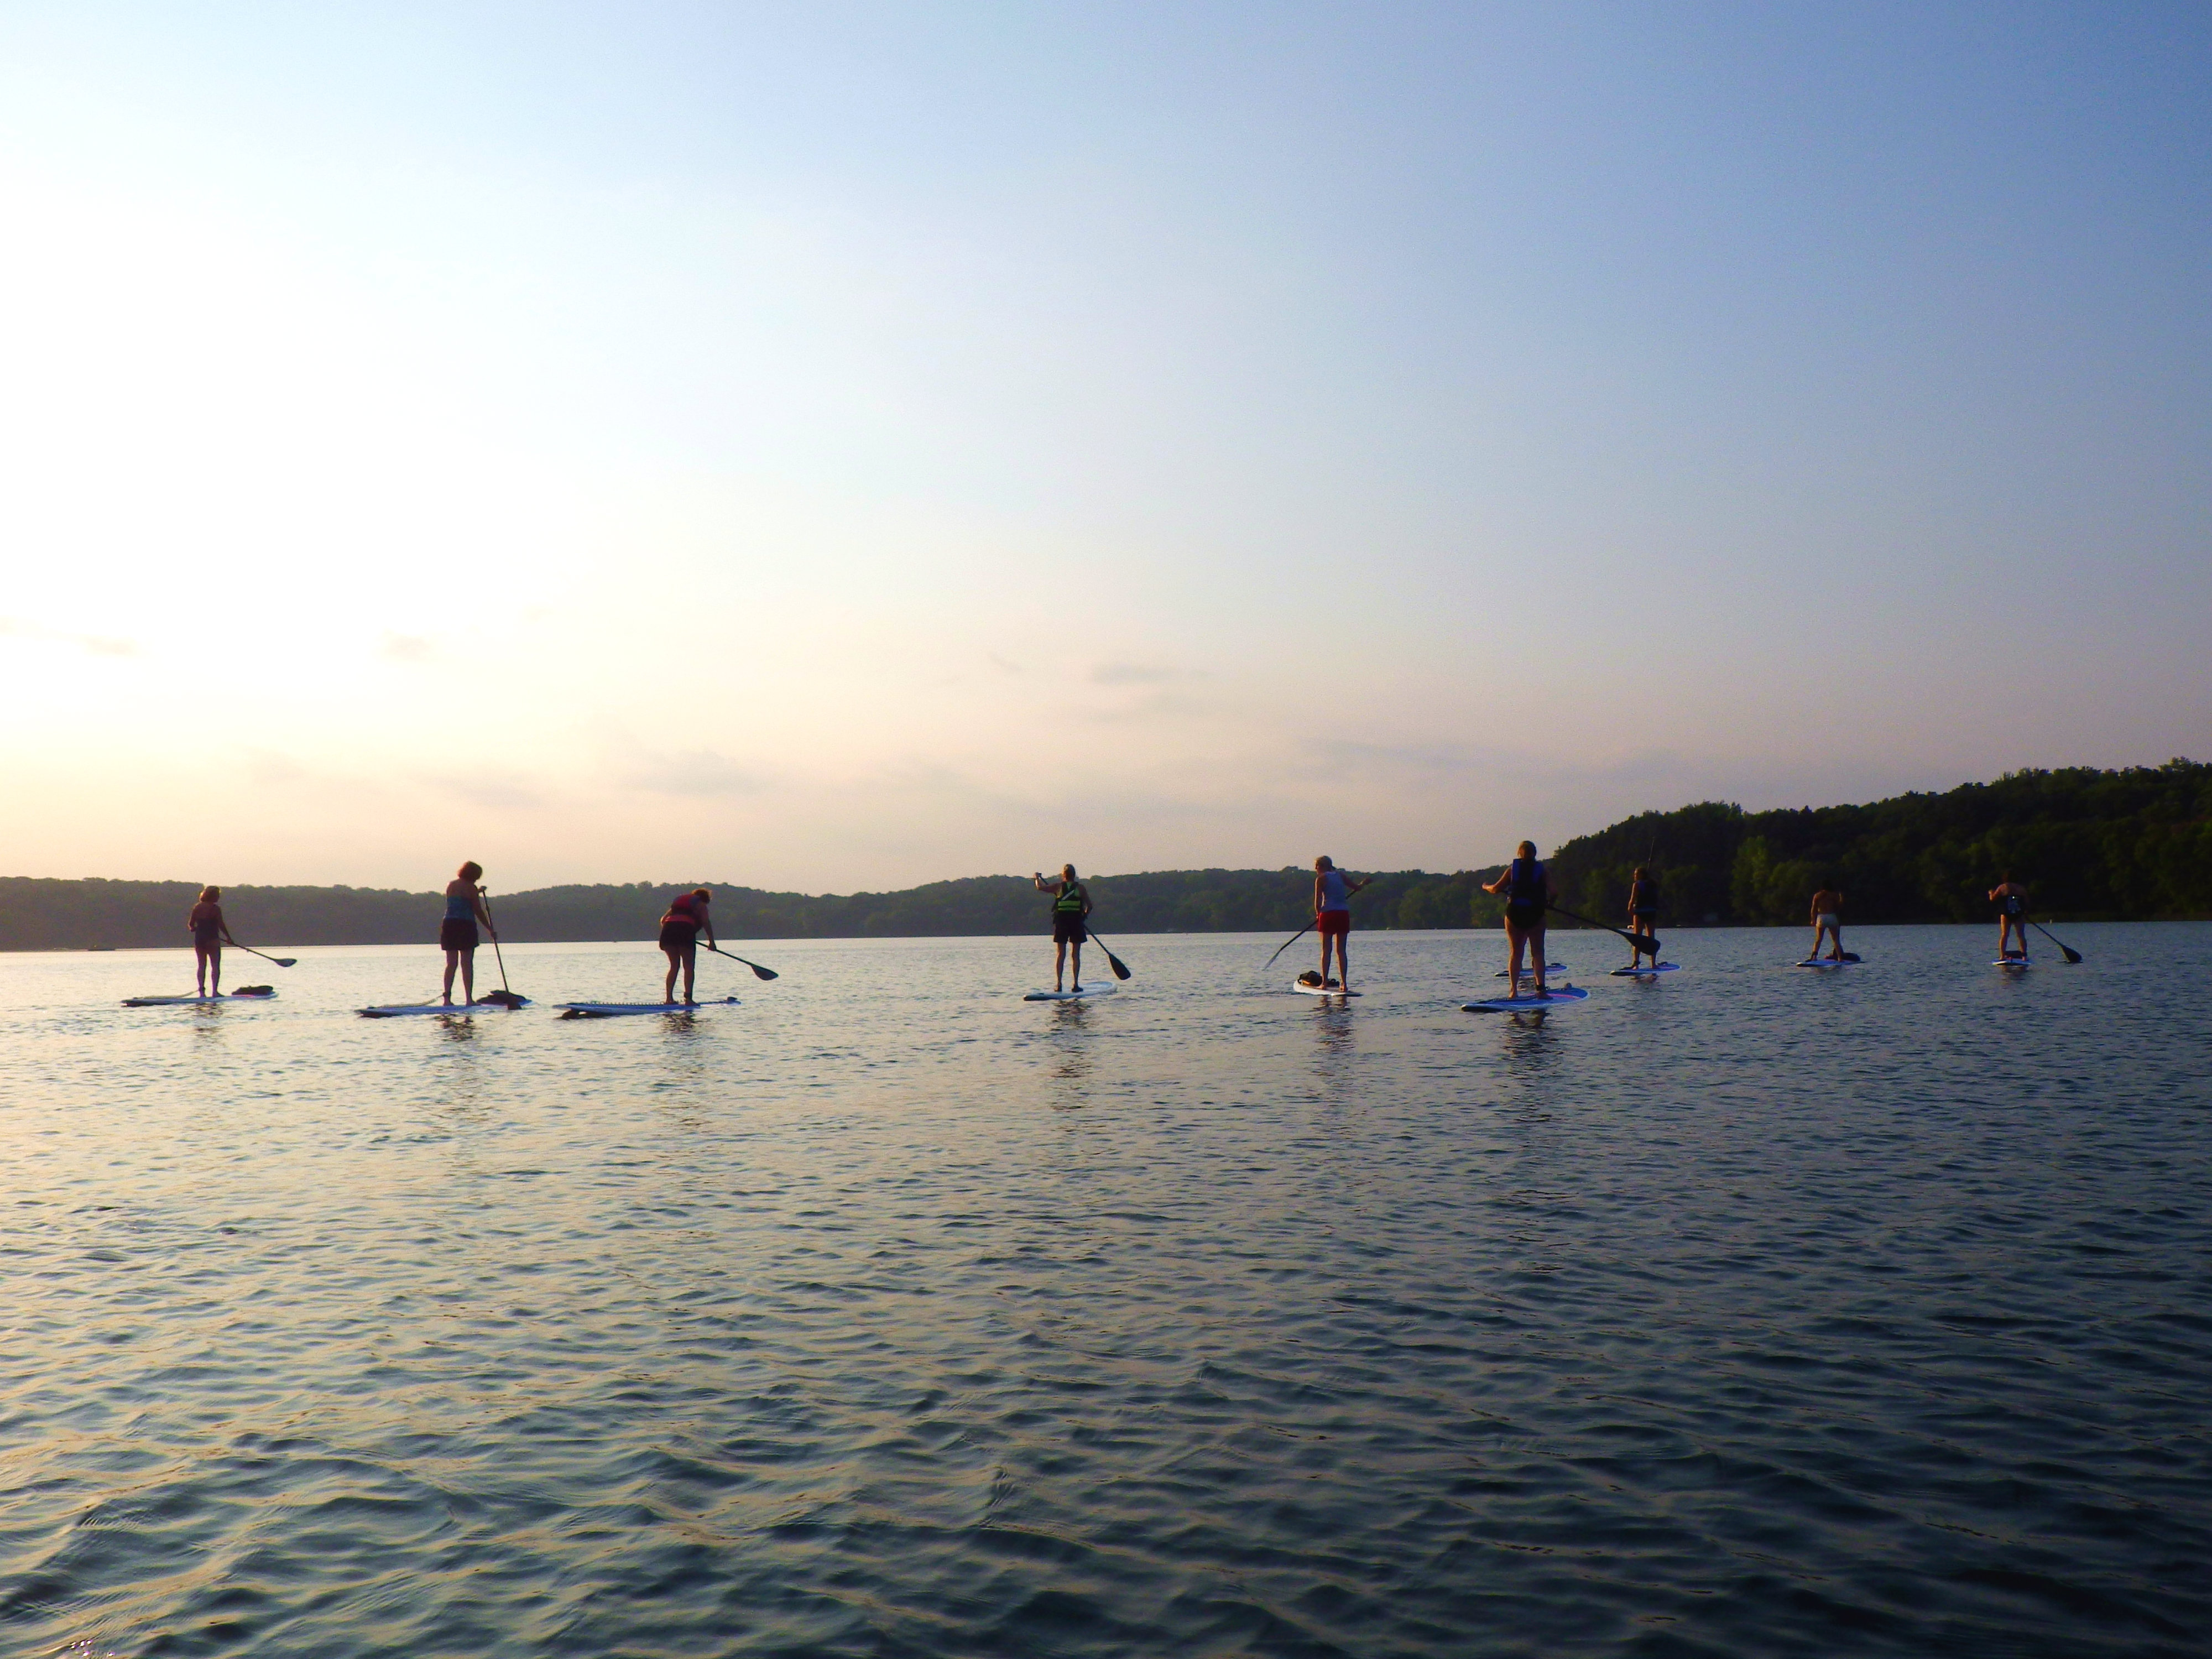 Stand-up paddleboard sunset paddle class at Square Lake Park.